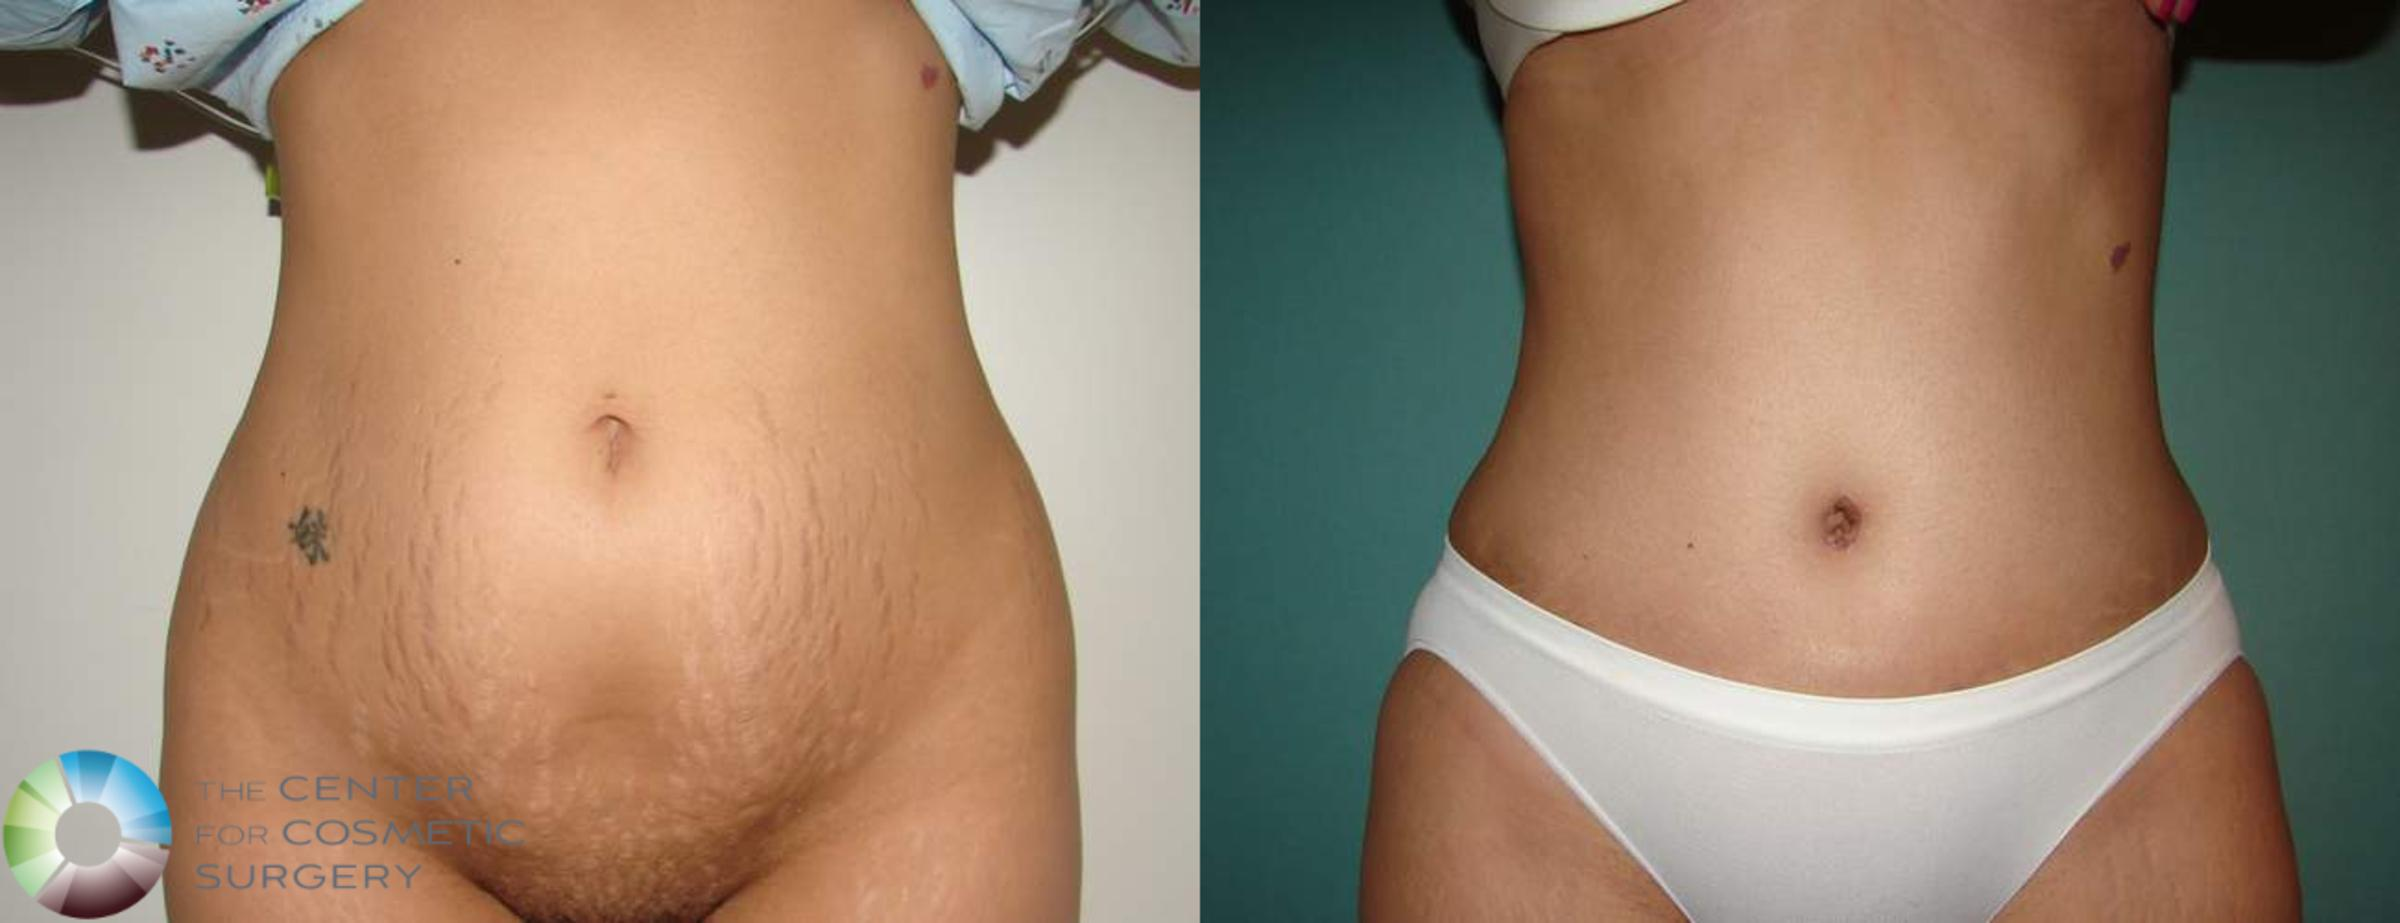 Tummy Tuck Case 552 Before & After View #1 | Golden, CO | The Center for Cosmetic Surgery